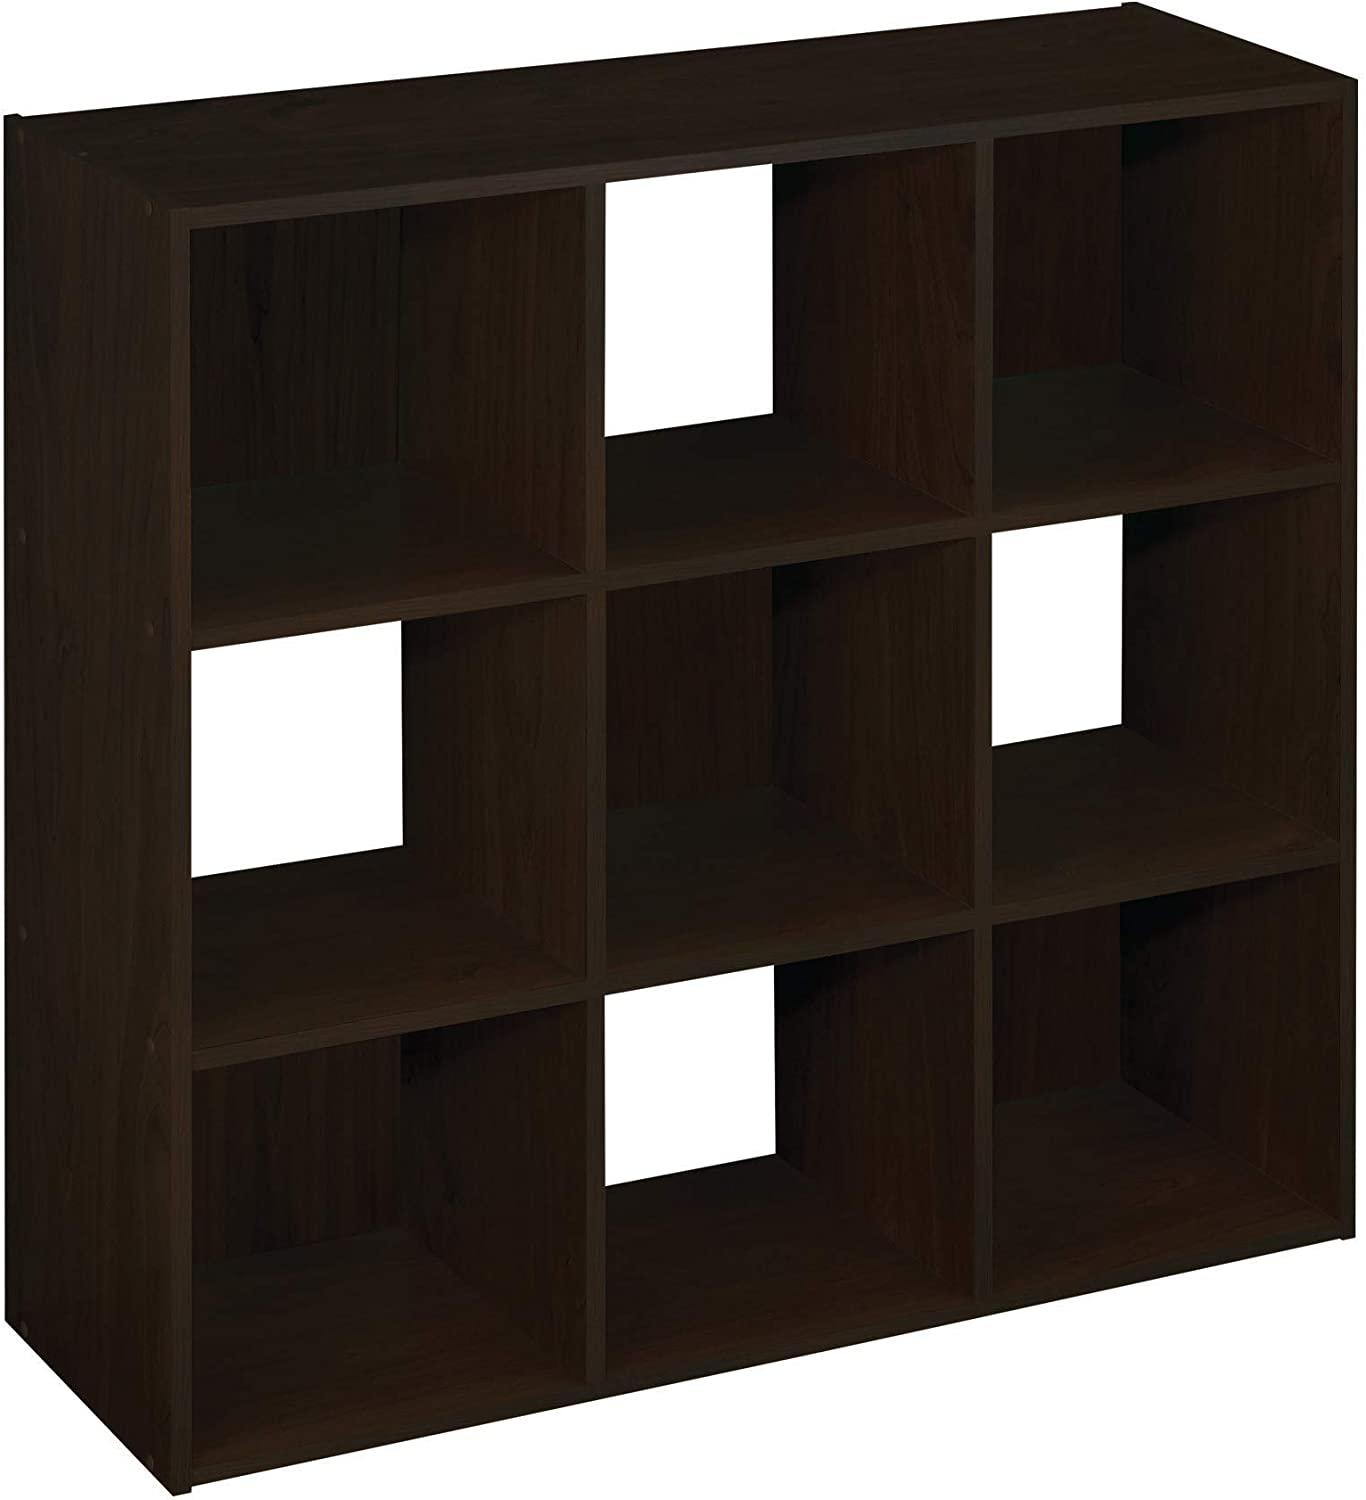 9 Cubes Organizer Bookcase Wood Bookshelf Open Book Shelf 4-Tier Multipurpose Storage Rack Stand Sturdy Dark Brown[US-Stock]